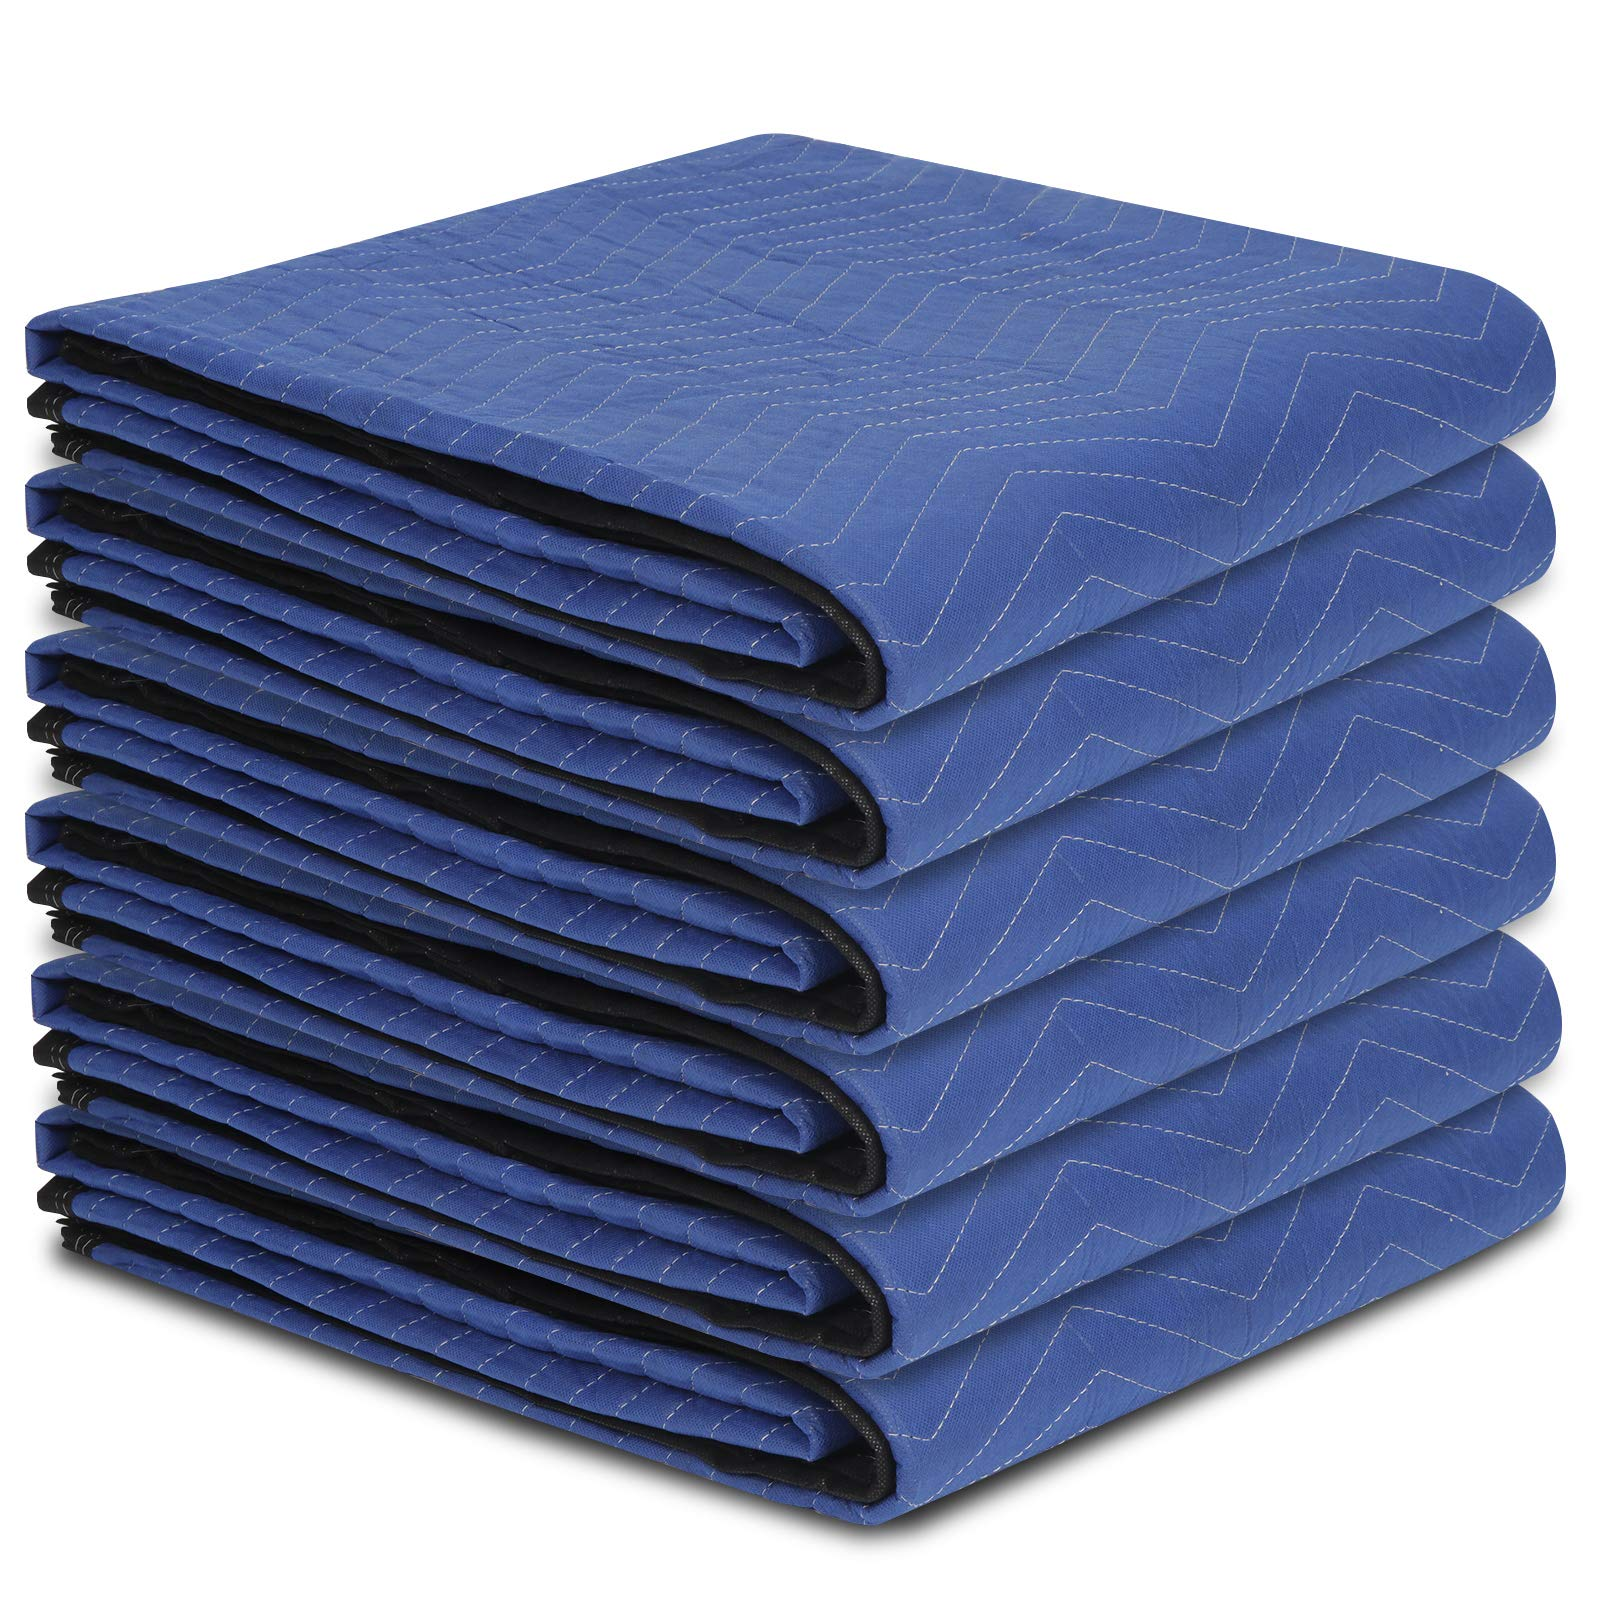 """F2C Mover Moving Blankets Pro Economy Thick 80""""x 72"""" Moving Packing Blankets Skins Pack of 12 Total 35Lbs/ Doz, Blue by F2C (Image #2)"""